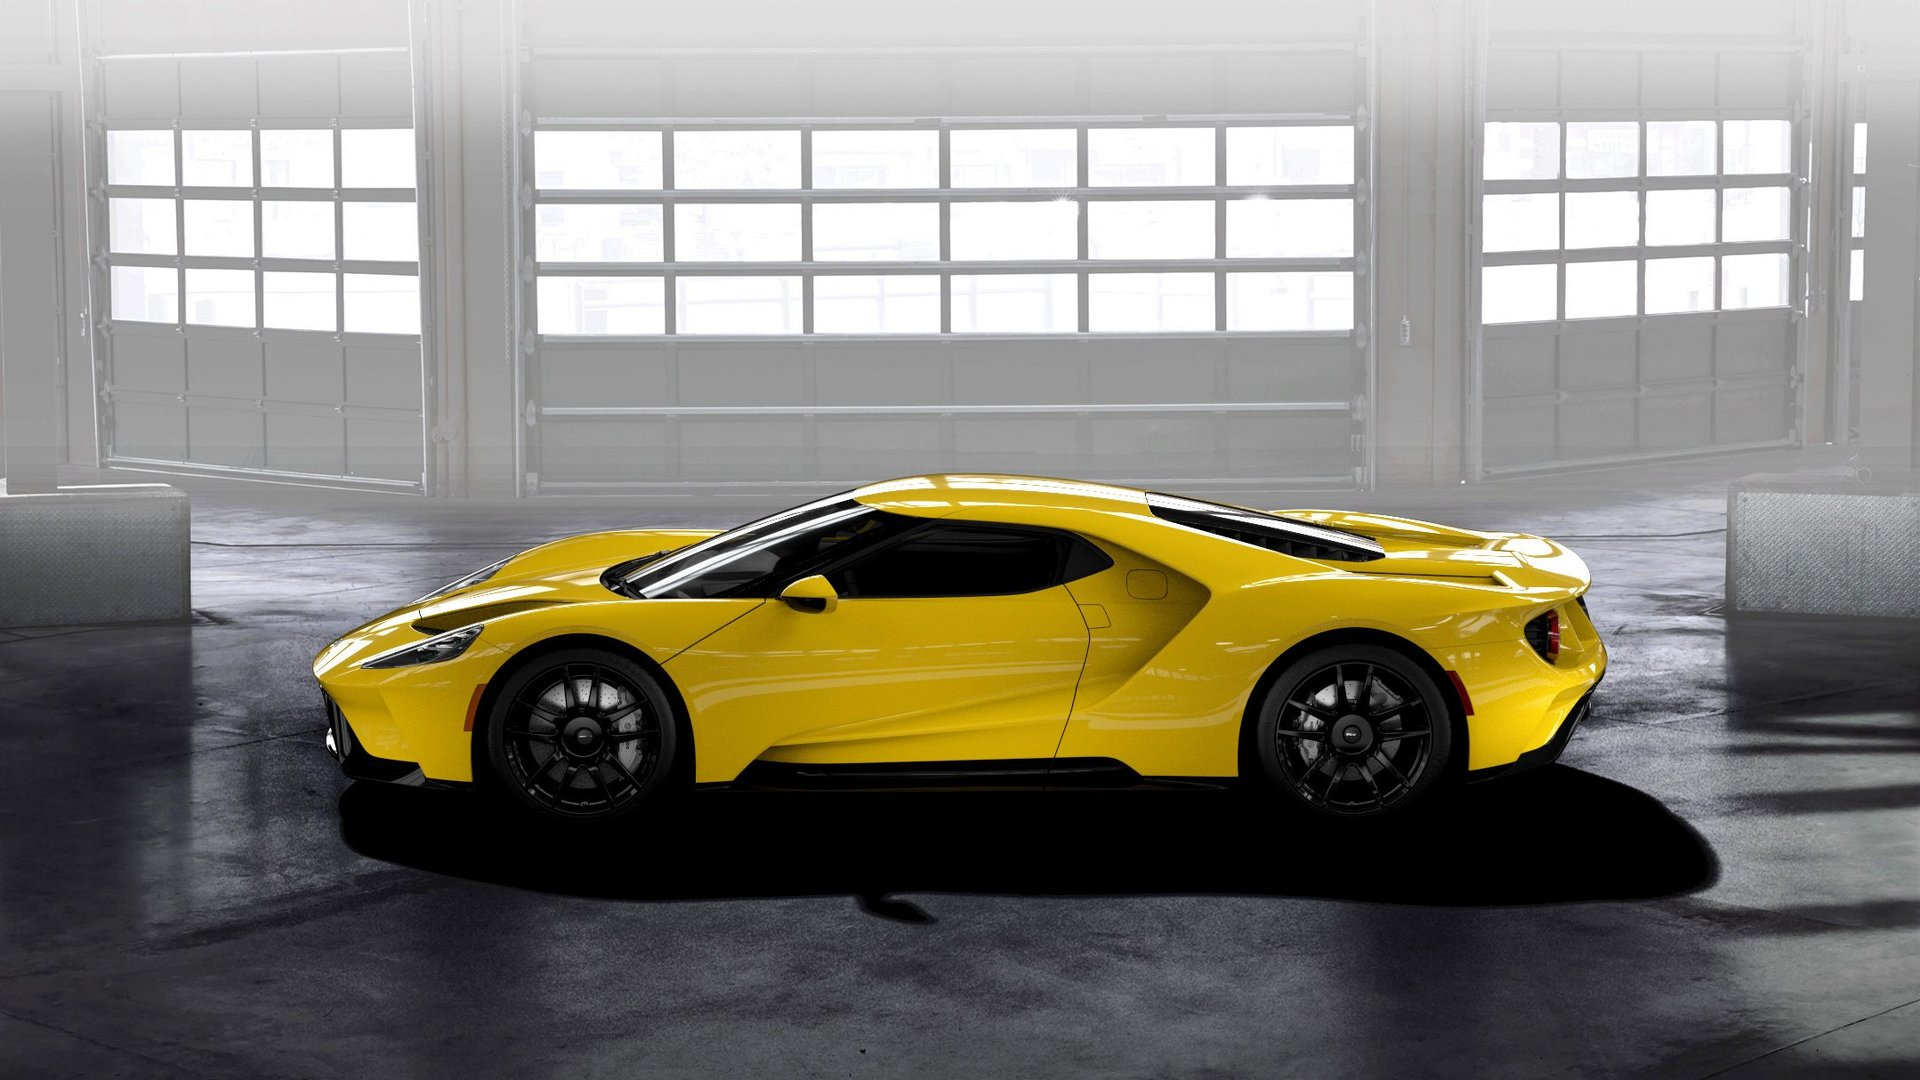 See the rejection letter sent to failed Ford GT applicants product 2016-07-29 103002 & See the rejection letter sent to failed Ford GT applicants markmcfarlin.com